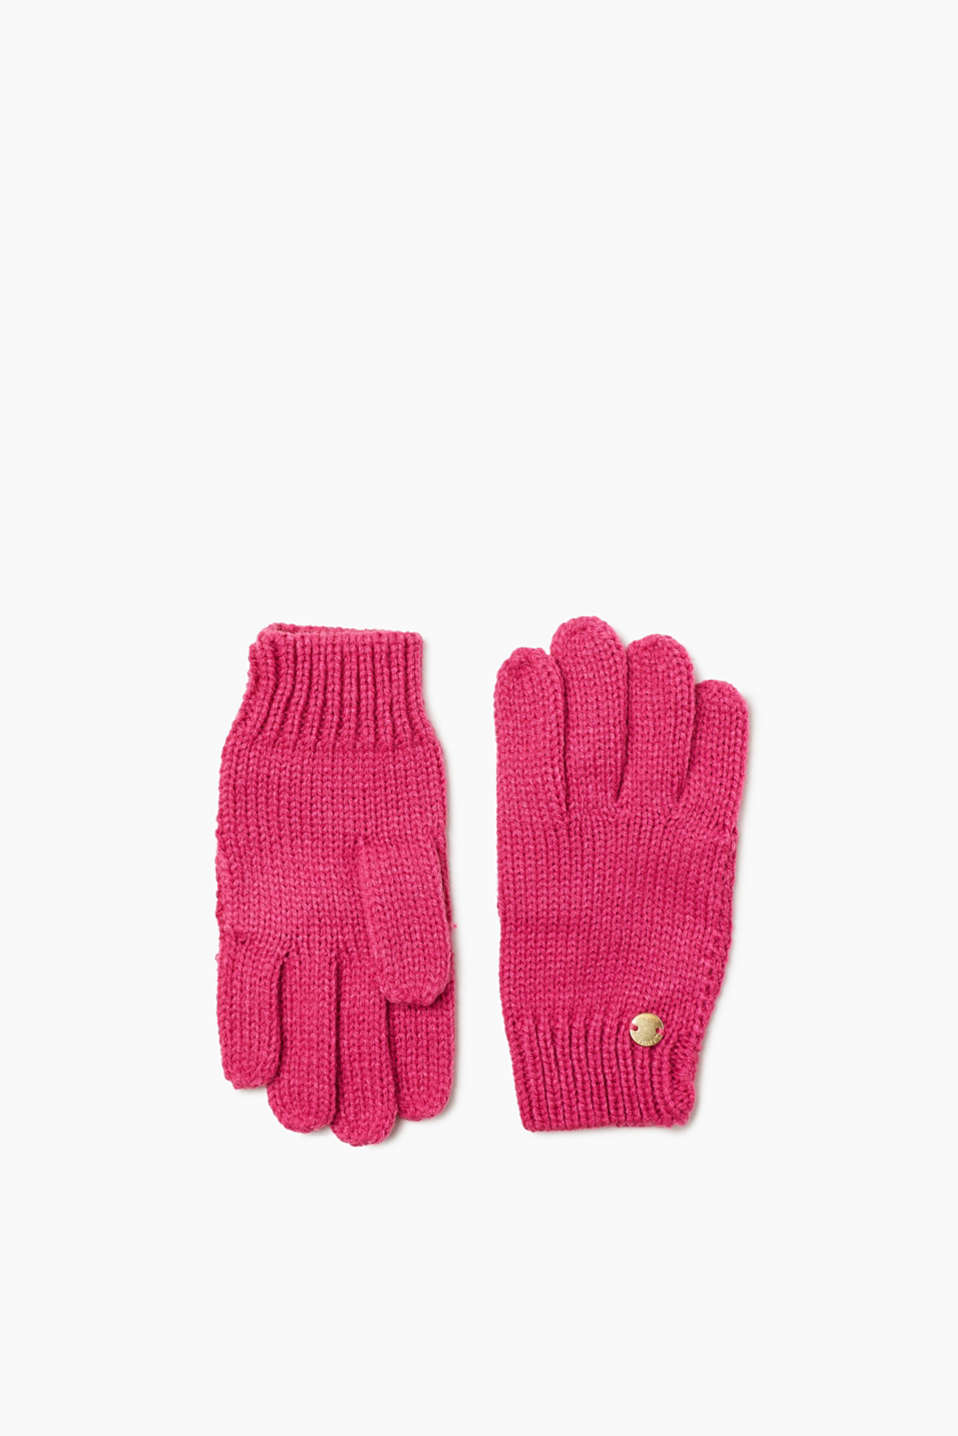 Esprit - Soft knitted gloves